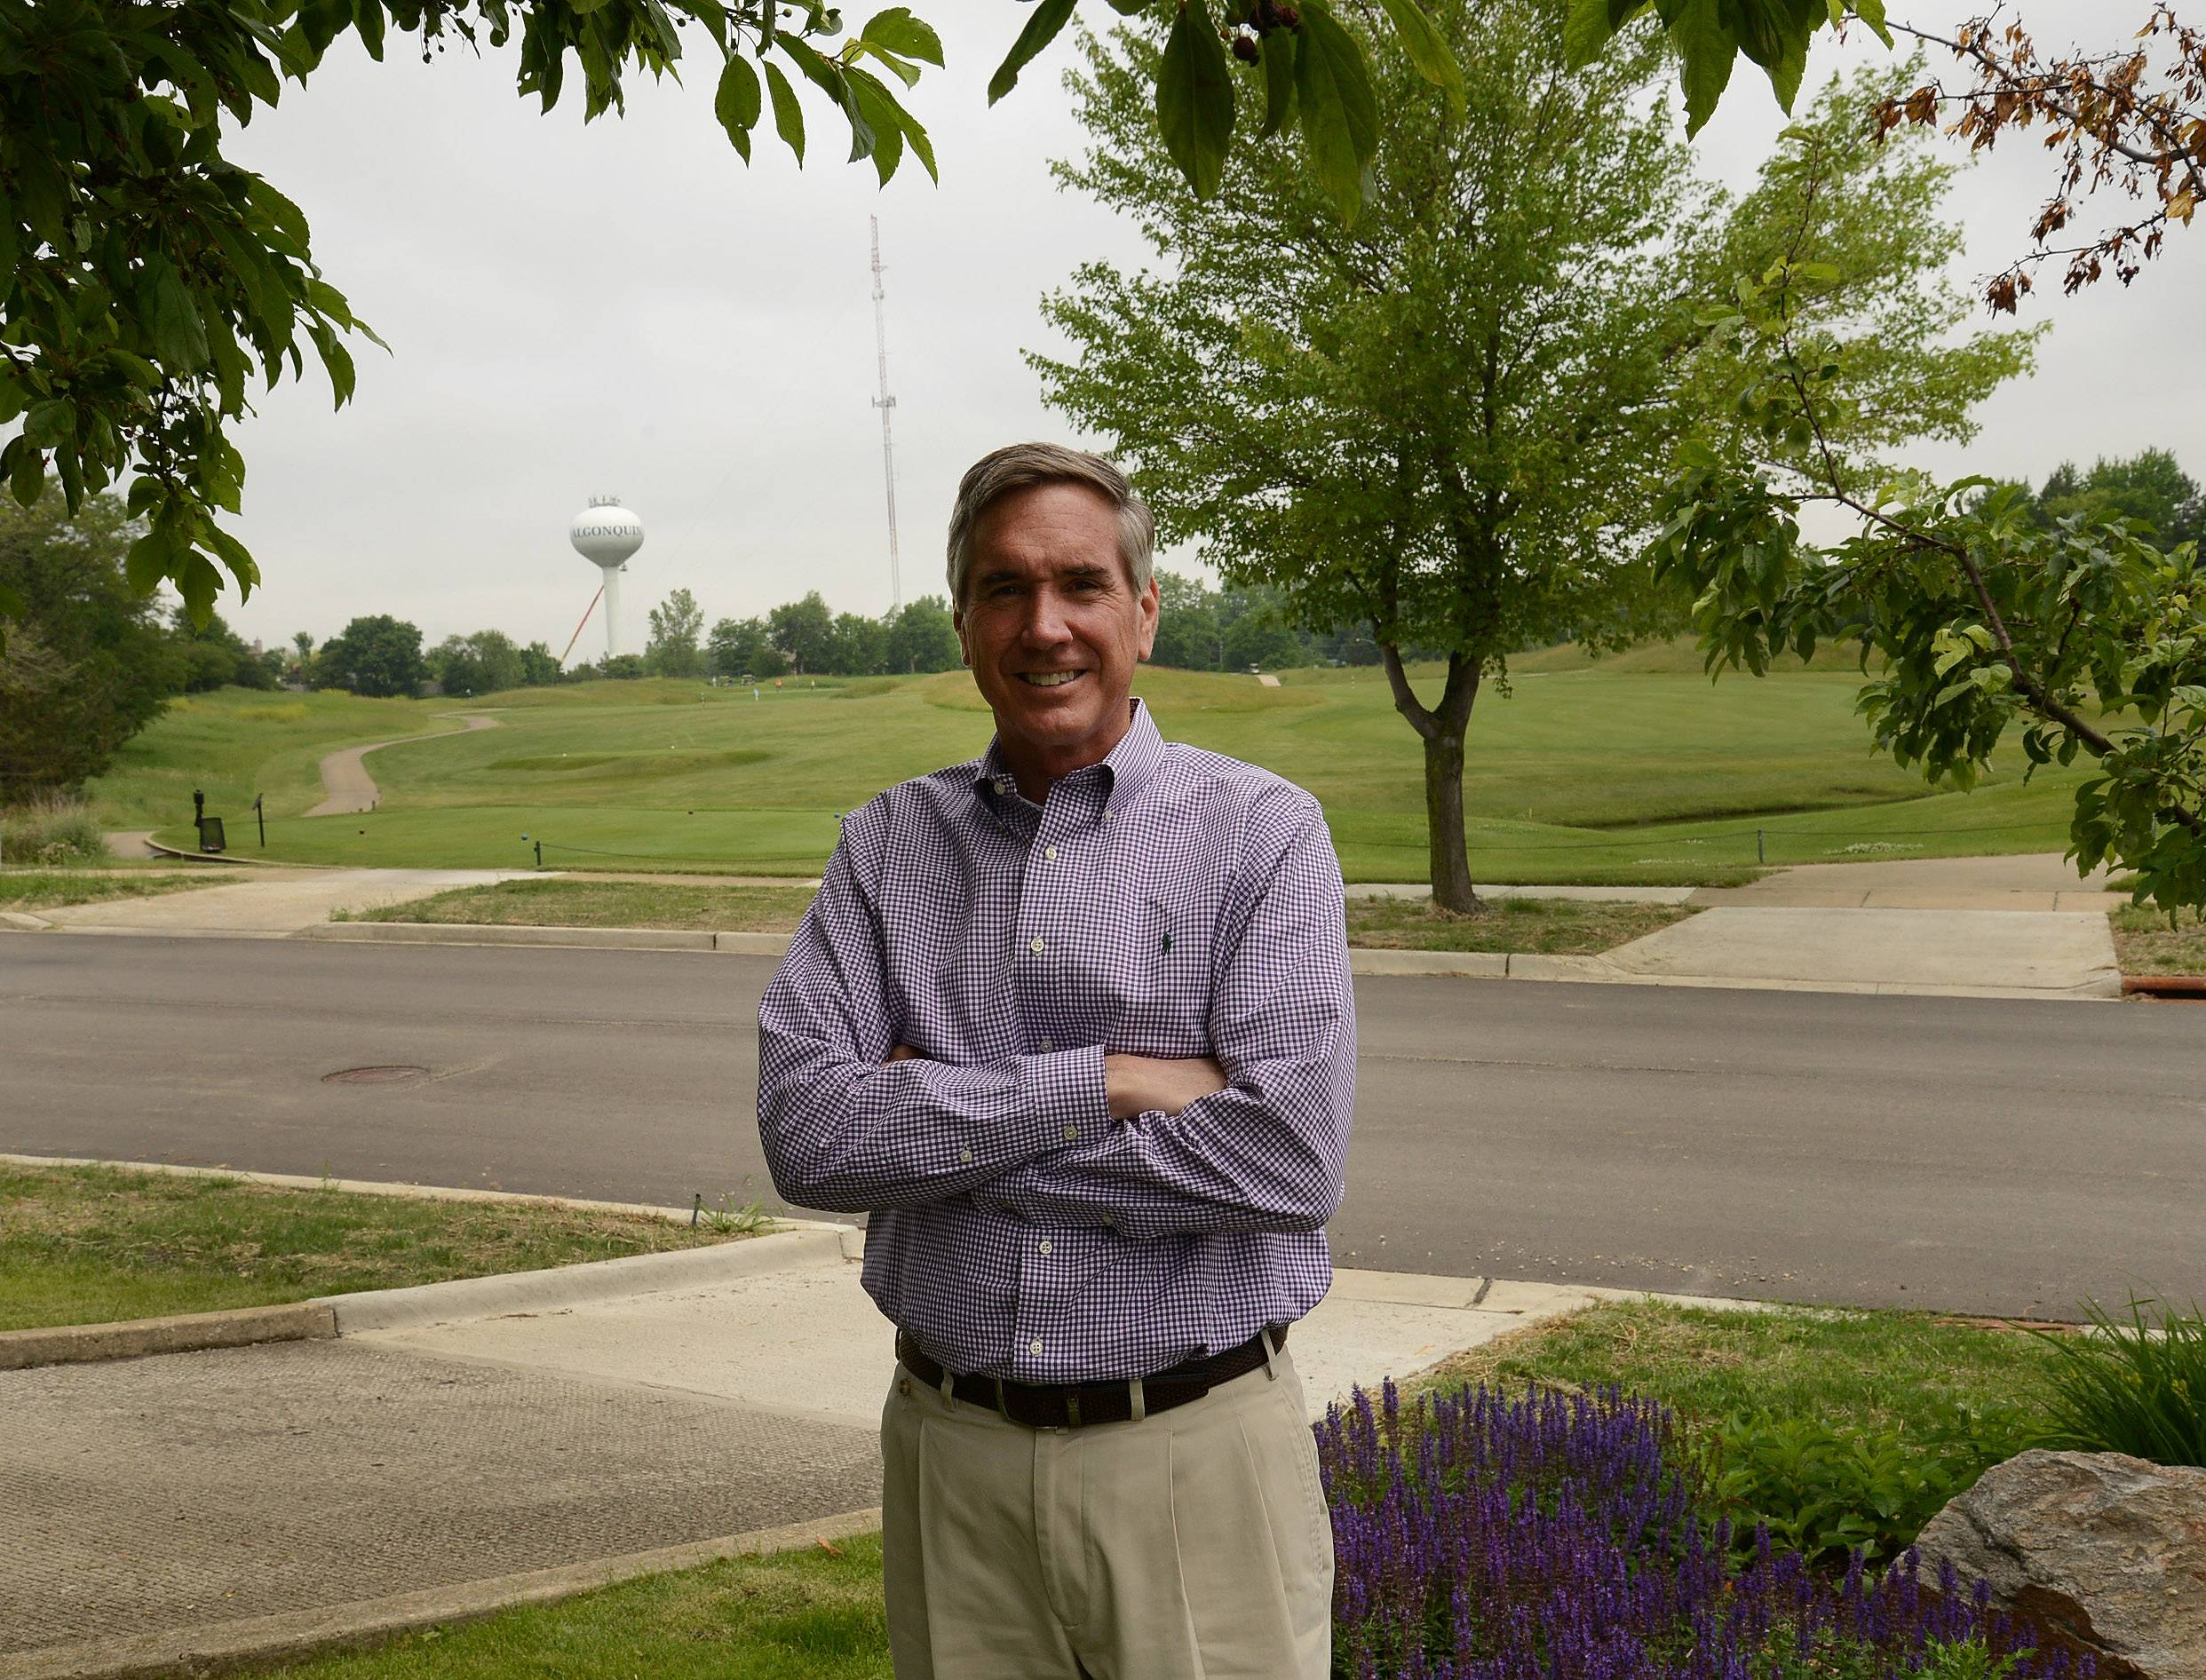 New Illinois Republican Party chairman and Cook County Commissioner Tim Schneider owns the Golf Club of Illinois in Algonquin.